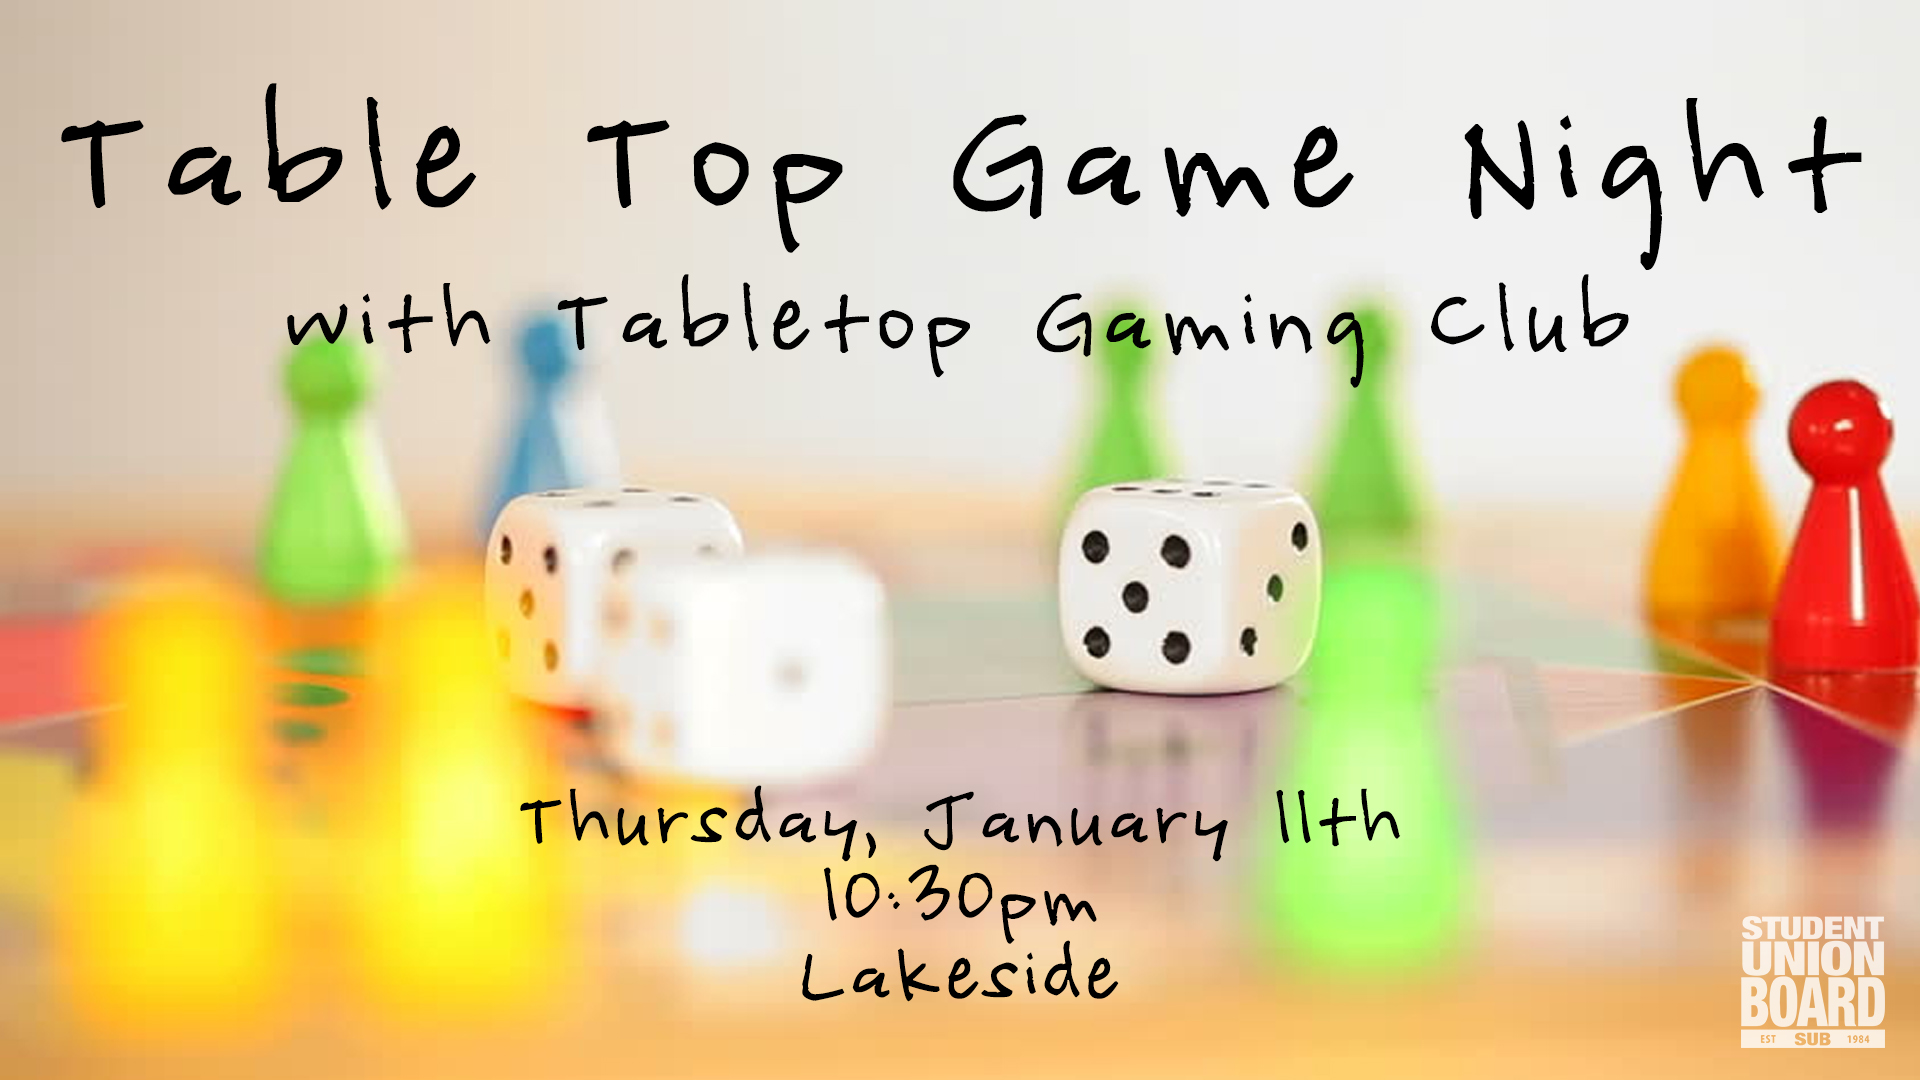 Game and Glow Night with Tabletop Gaming Club will feature board games and glow decorations!